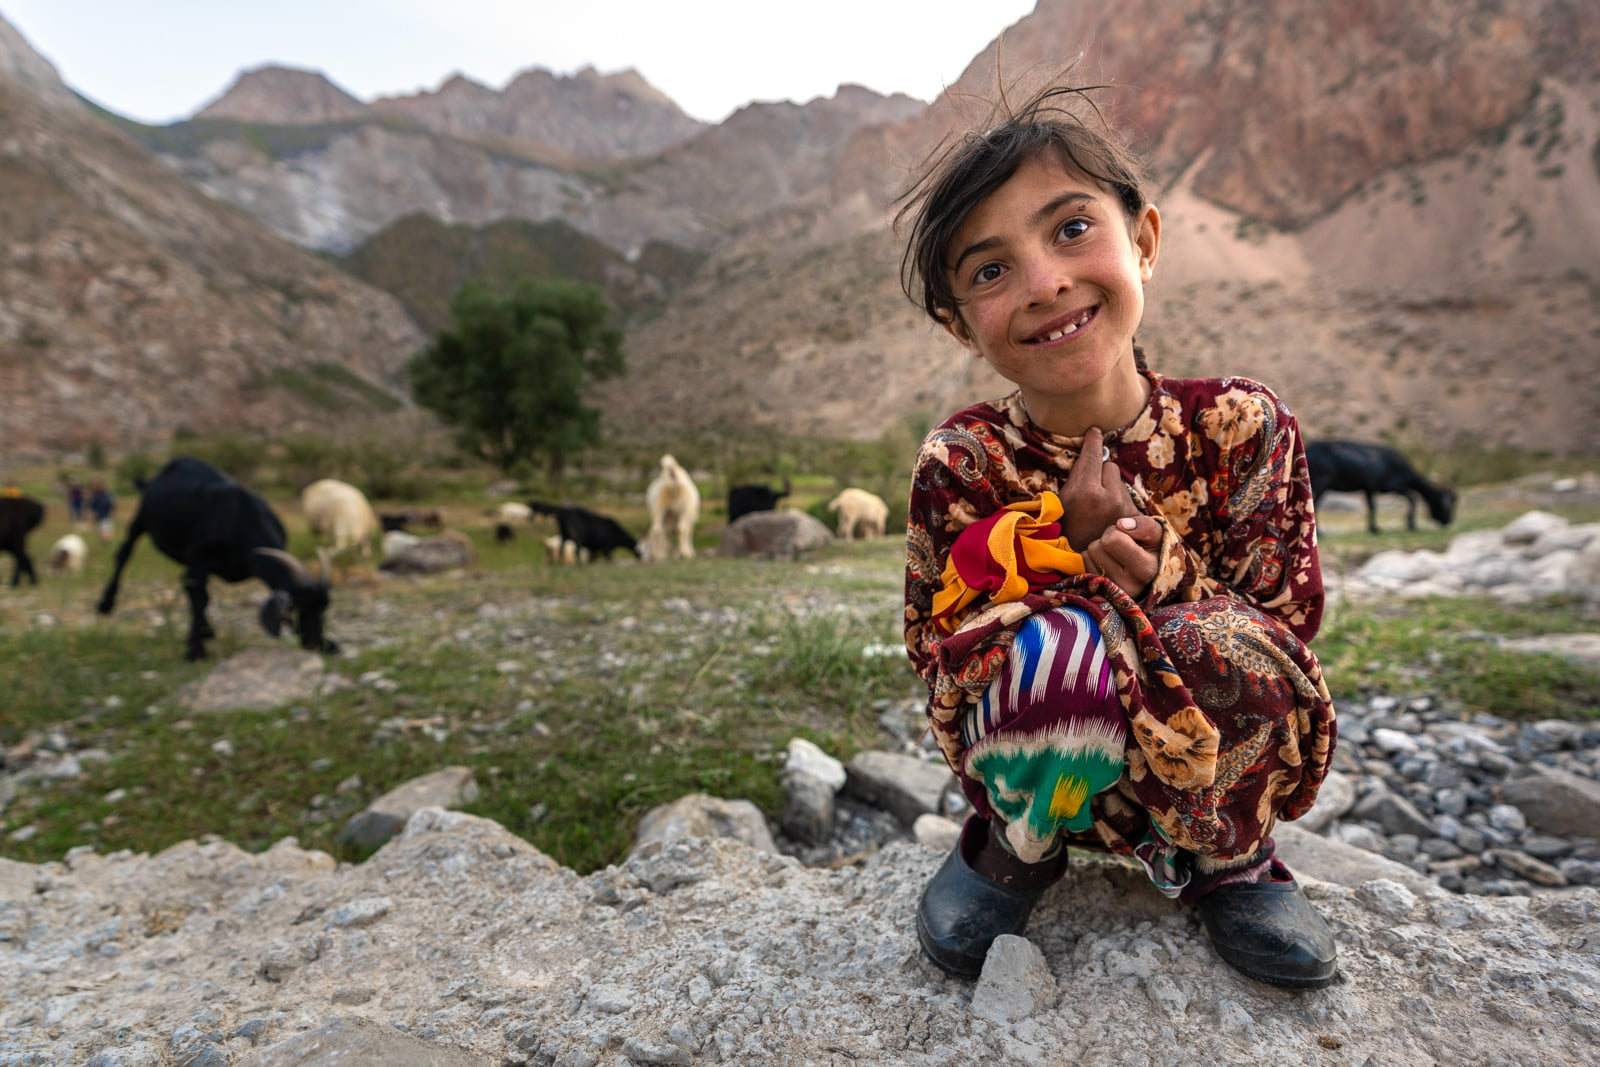 Local shepherd girl in Haft Kol, Tajikistan